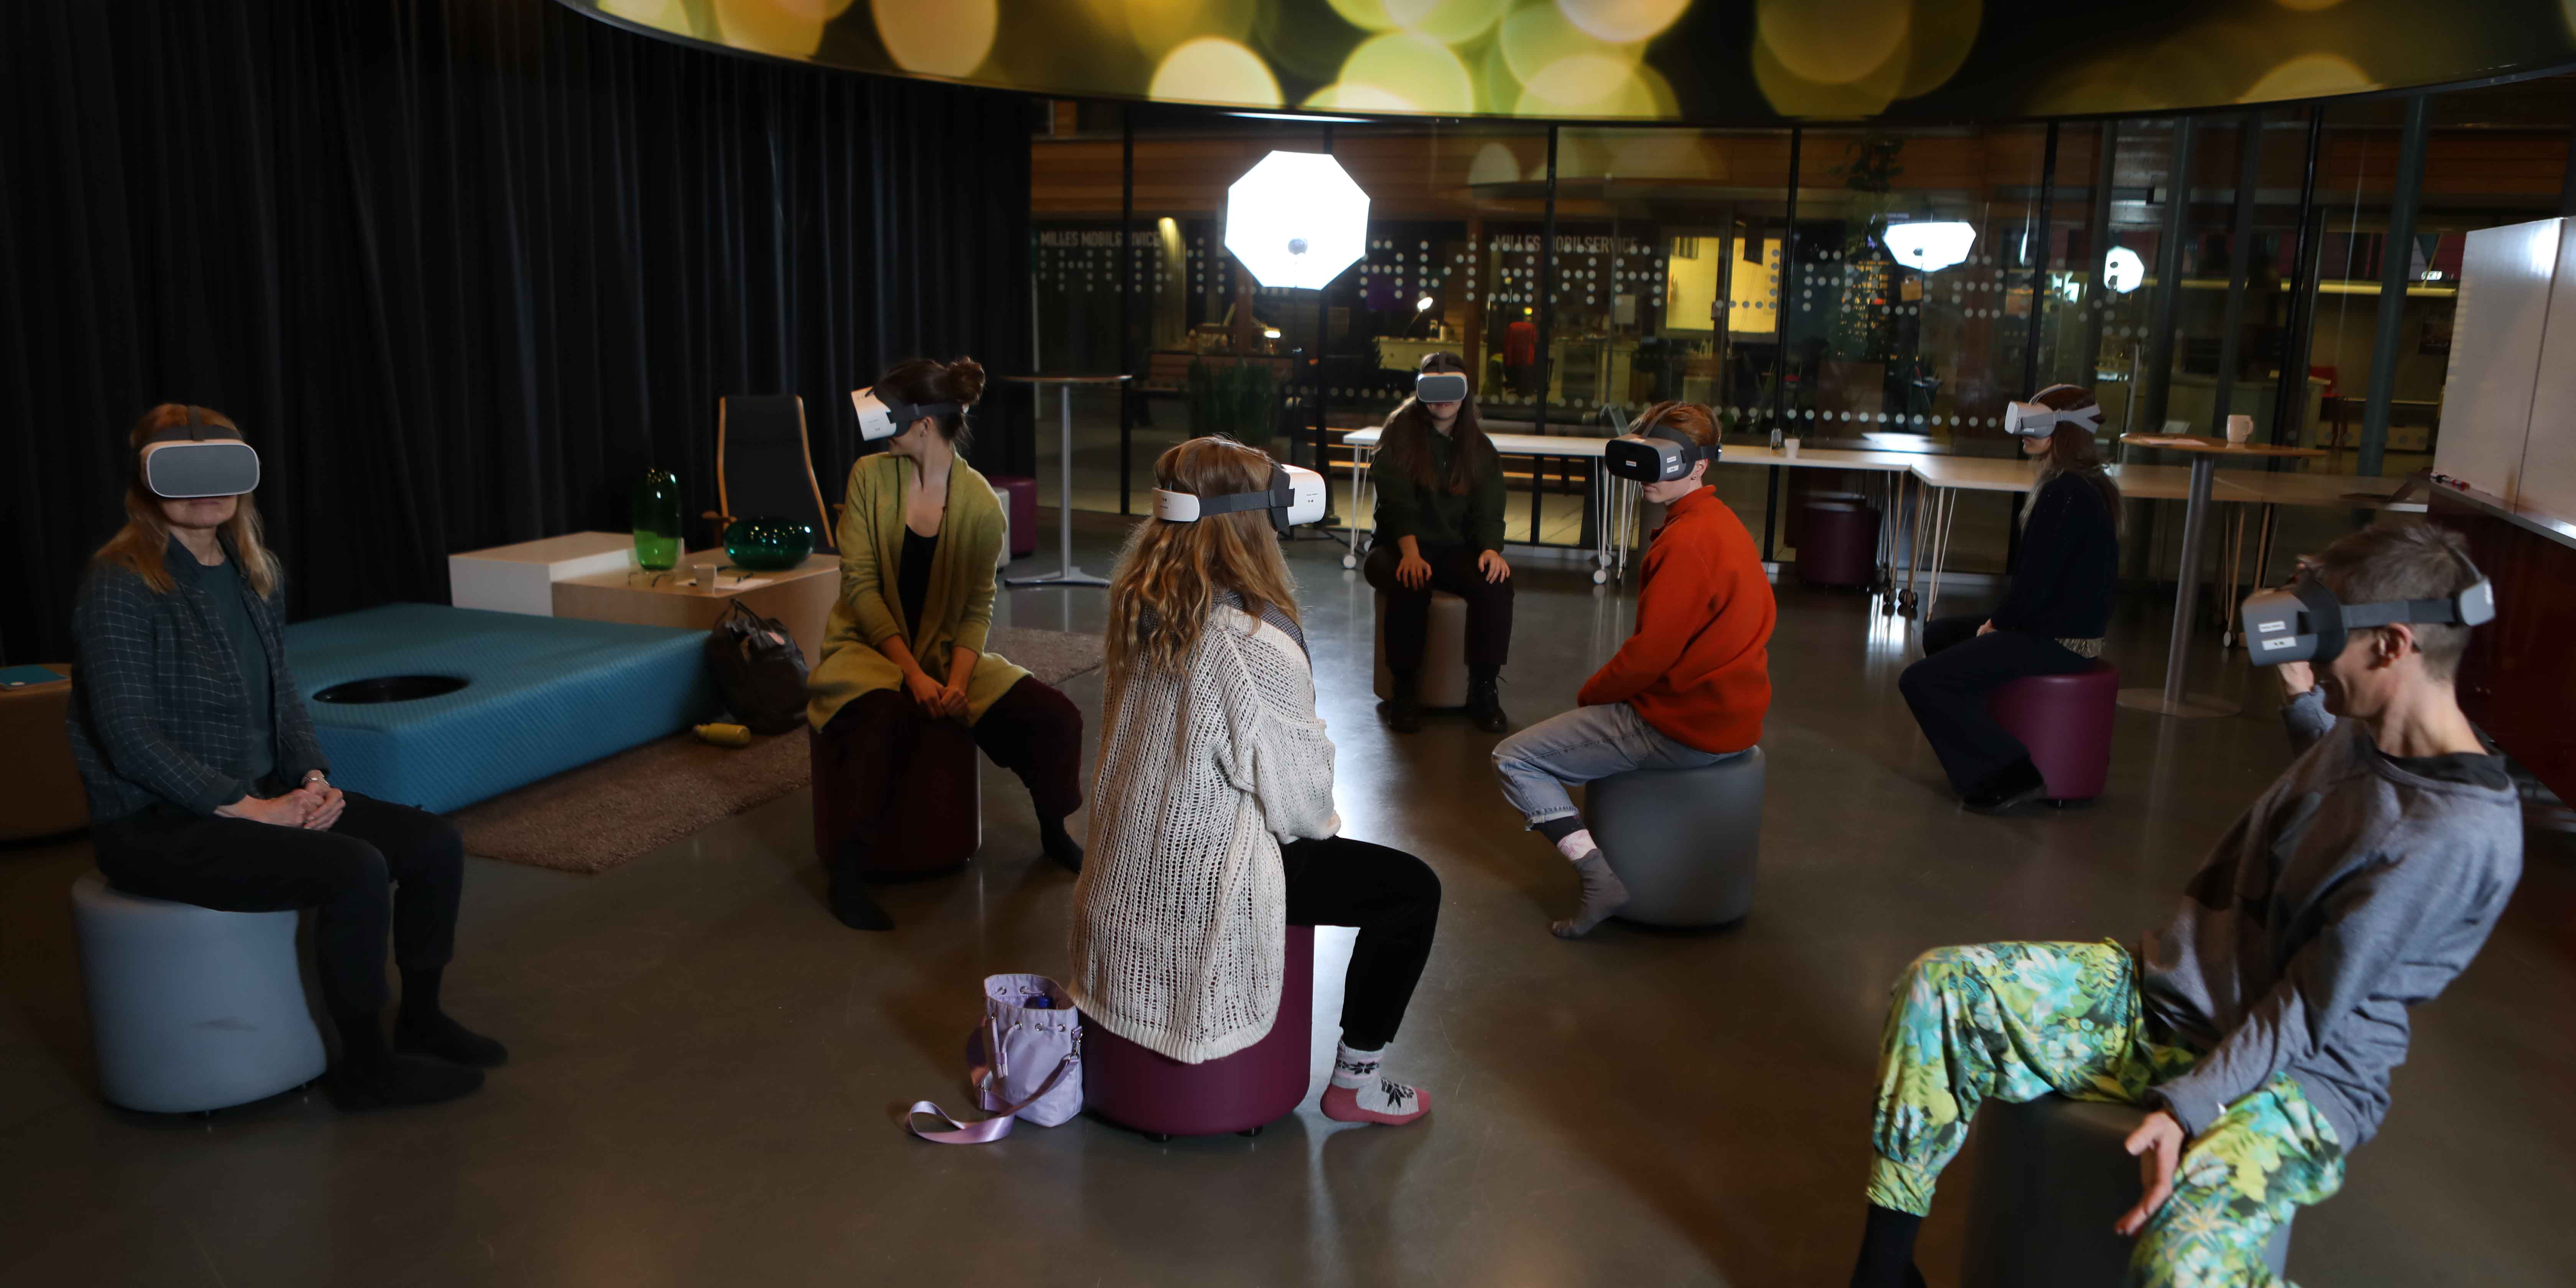 The image shows seven people sitting on fabric-covered stools in a dimly lit room. They are all wearing mask resembling binoculars. Photo: GGM FIlm